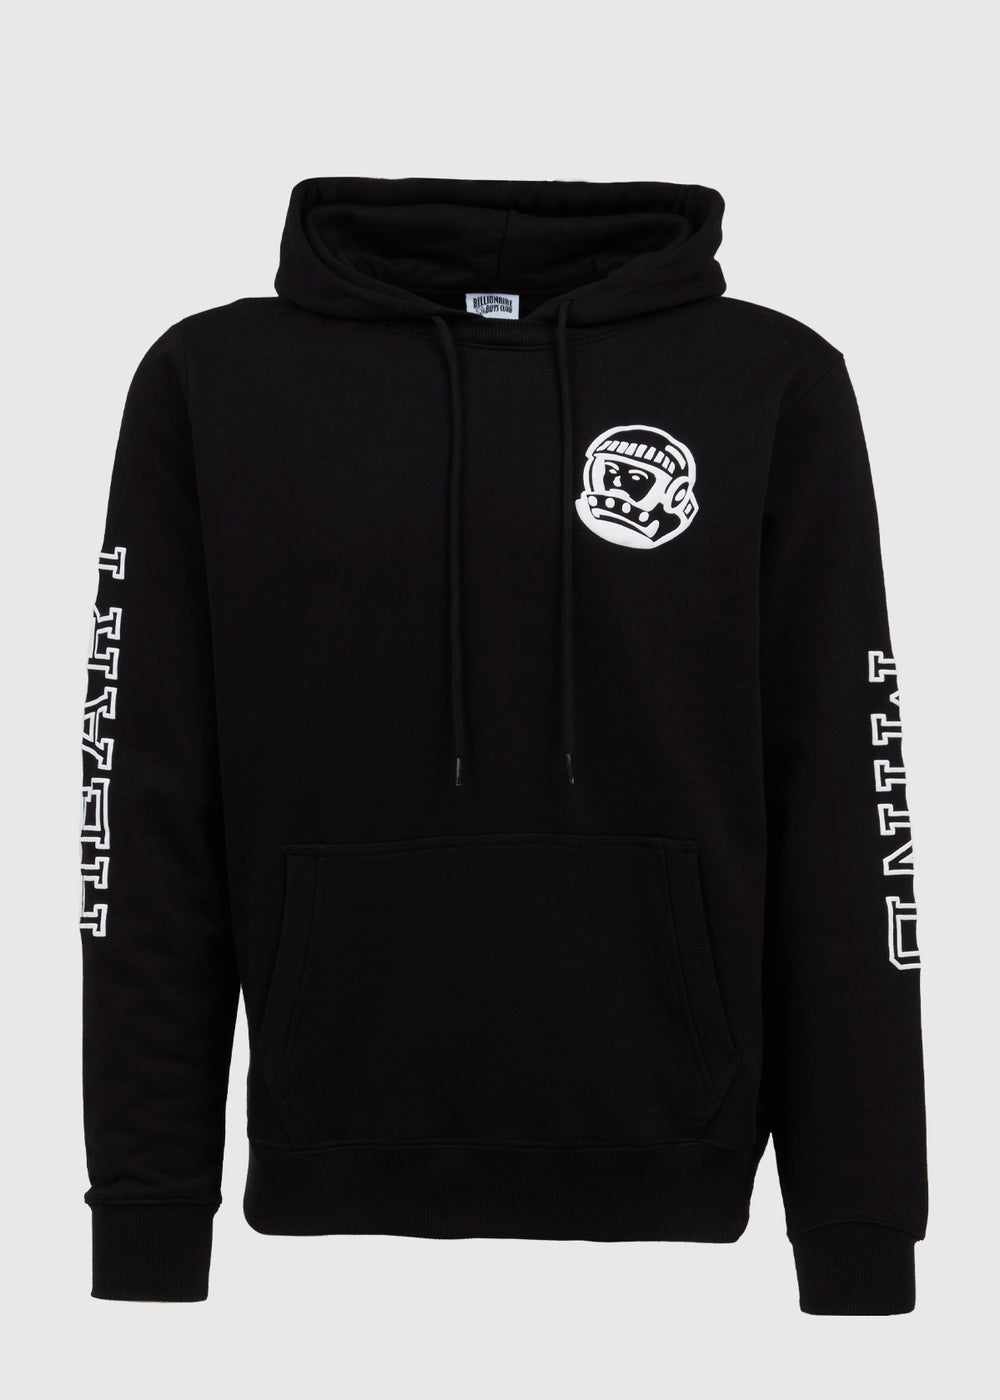 billionaire-boys-club-heartmind-hoodie-891-7307-blk-blk-1